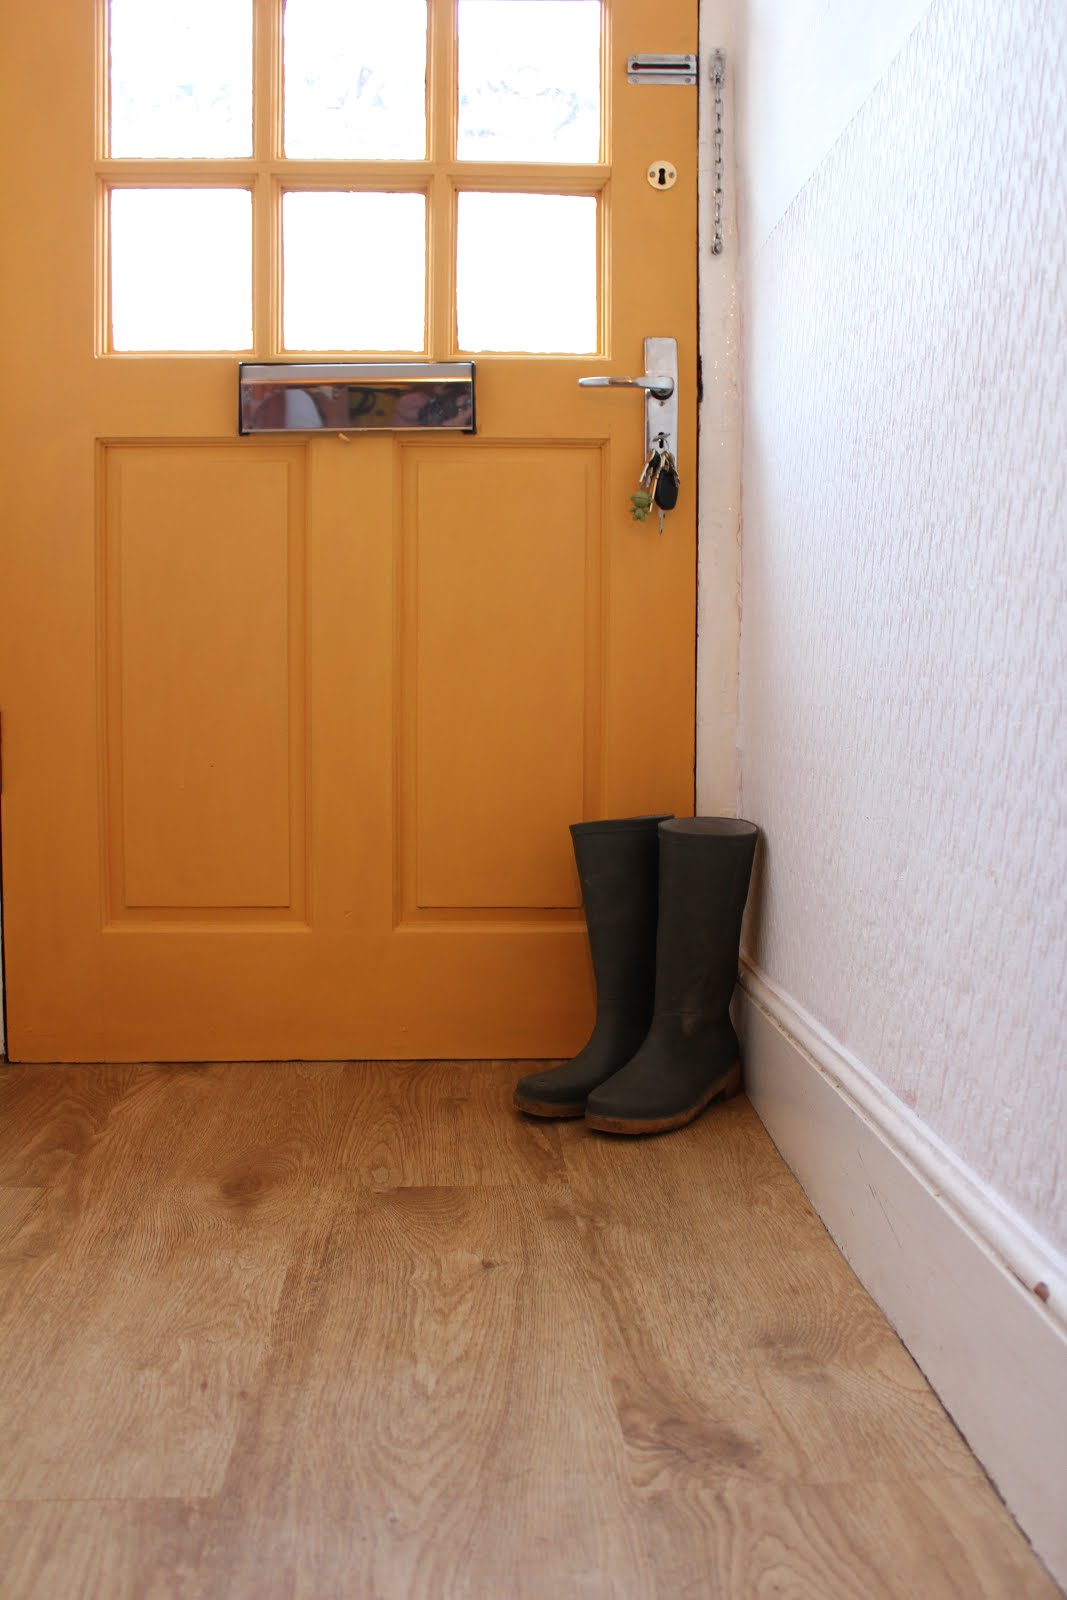 Mustard Yellow Front Door in Hallway